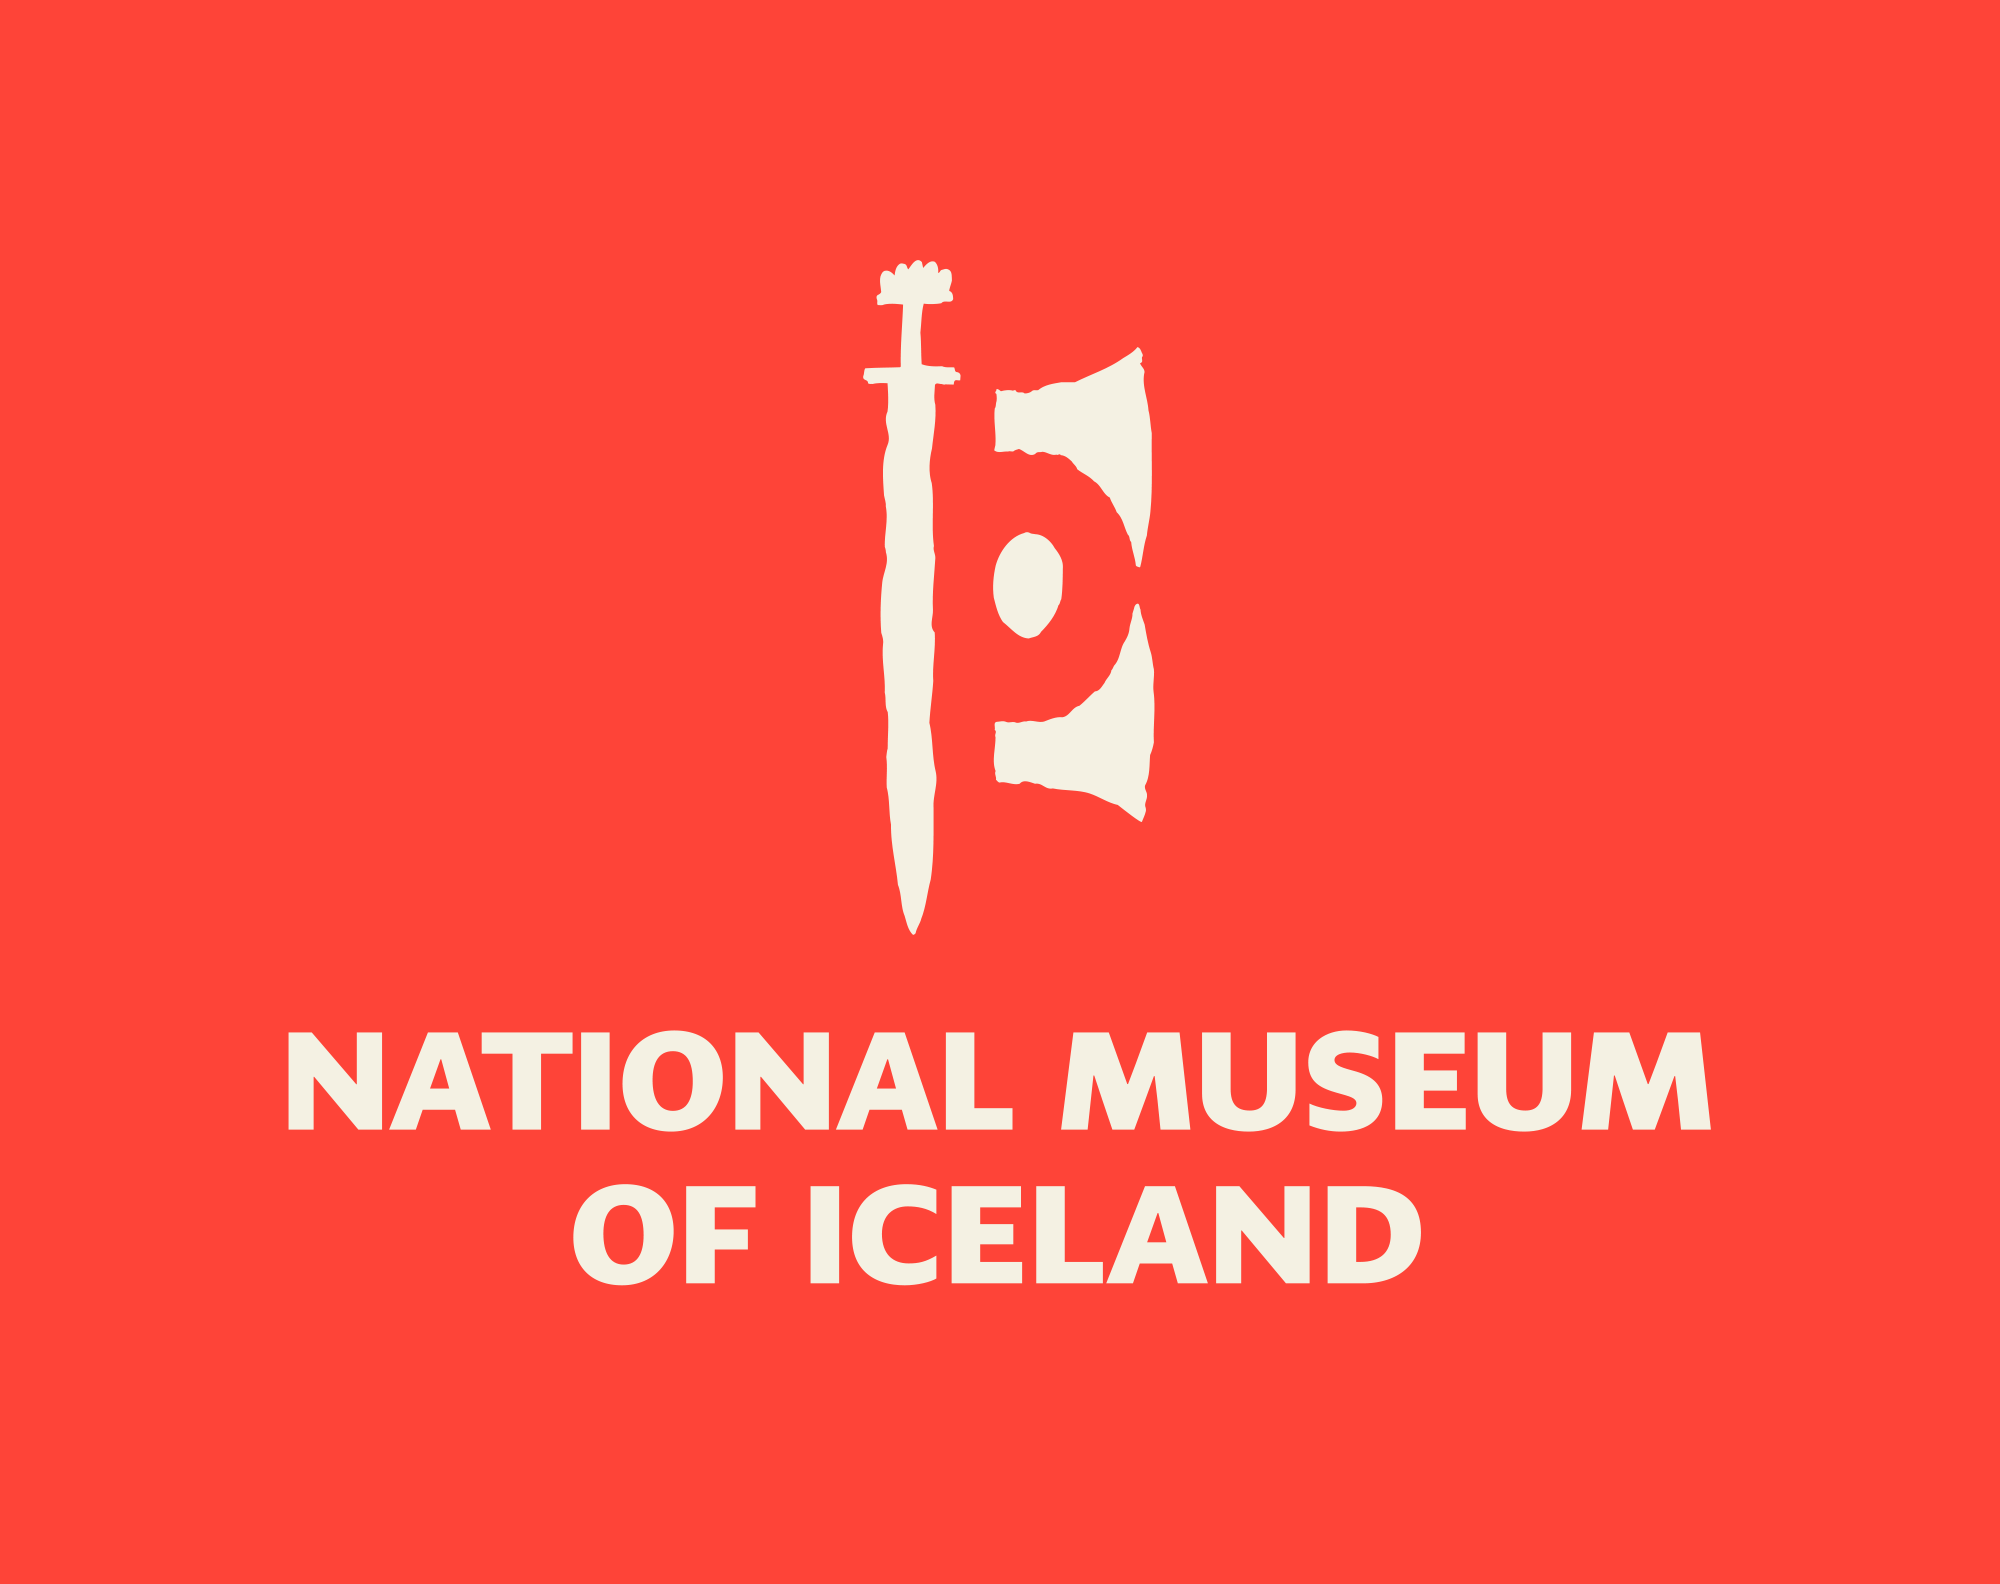 national_museum_of_iceland_logo.png